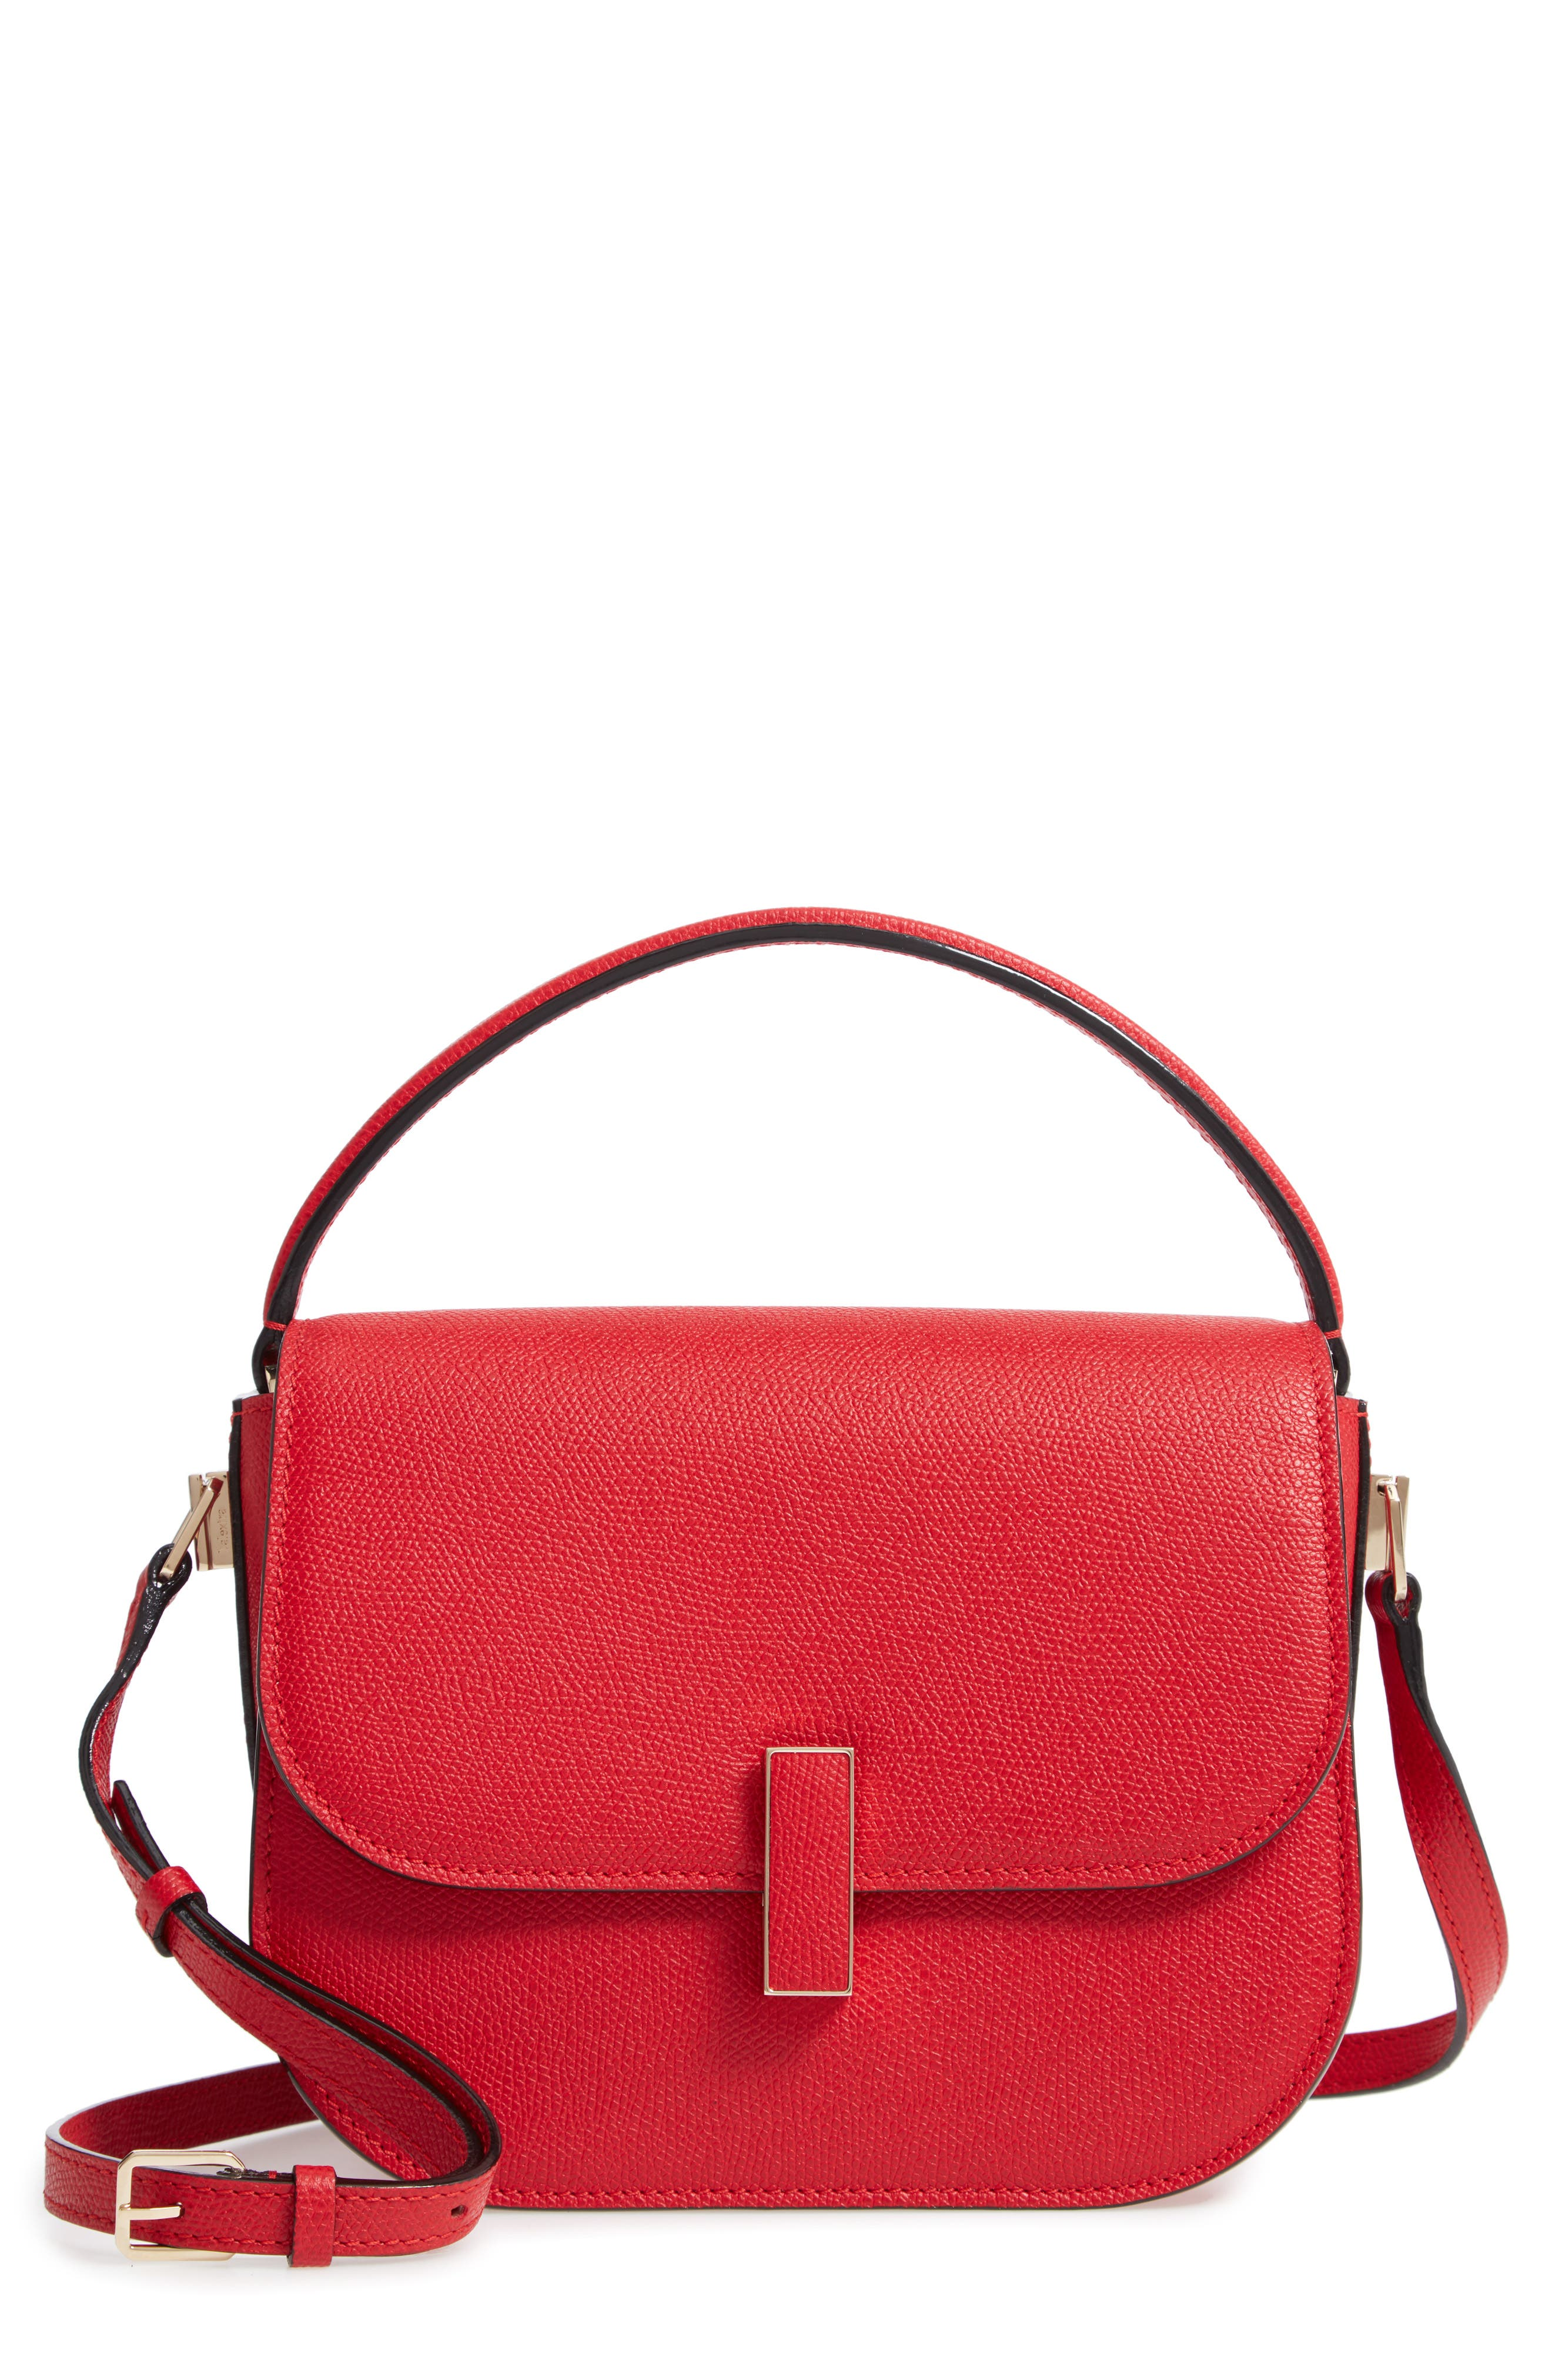 Iside Leather Top Handle Bag,                             Main thumbnail 1, color,                             RED